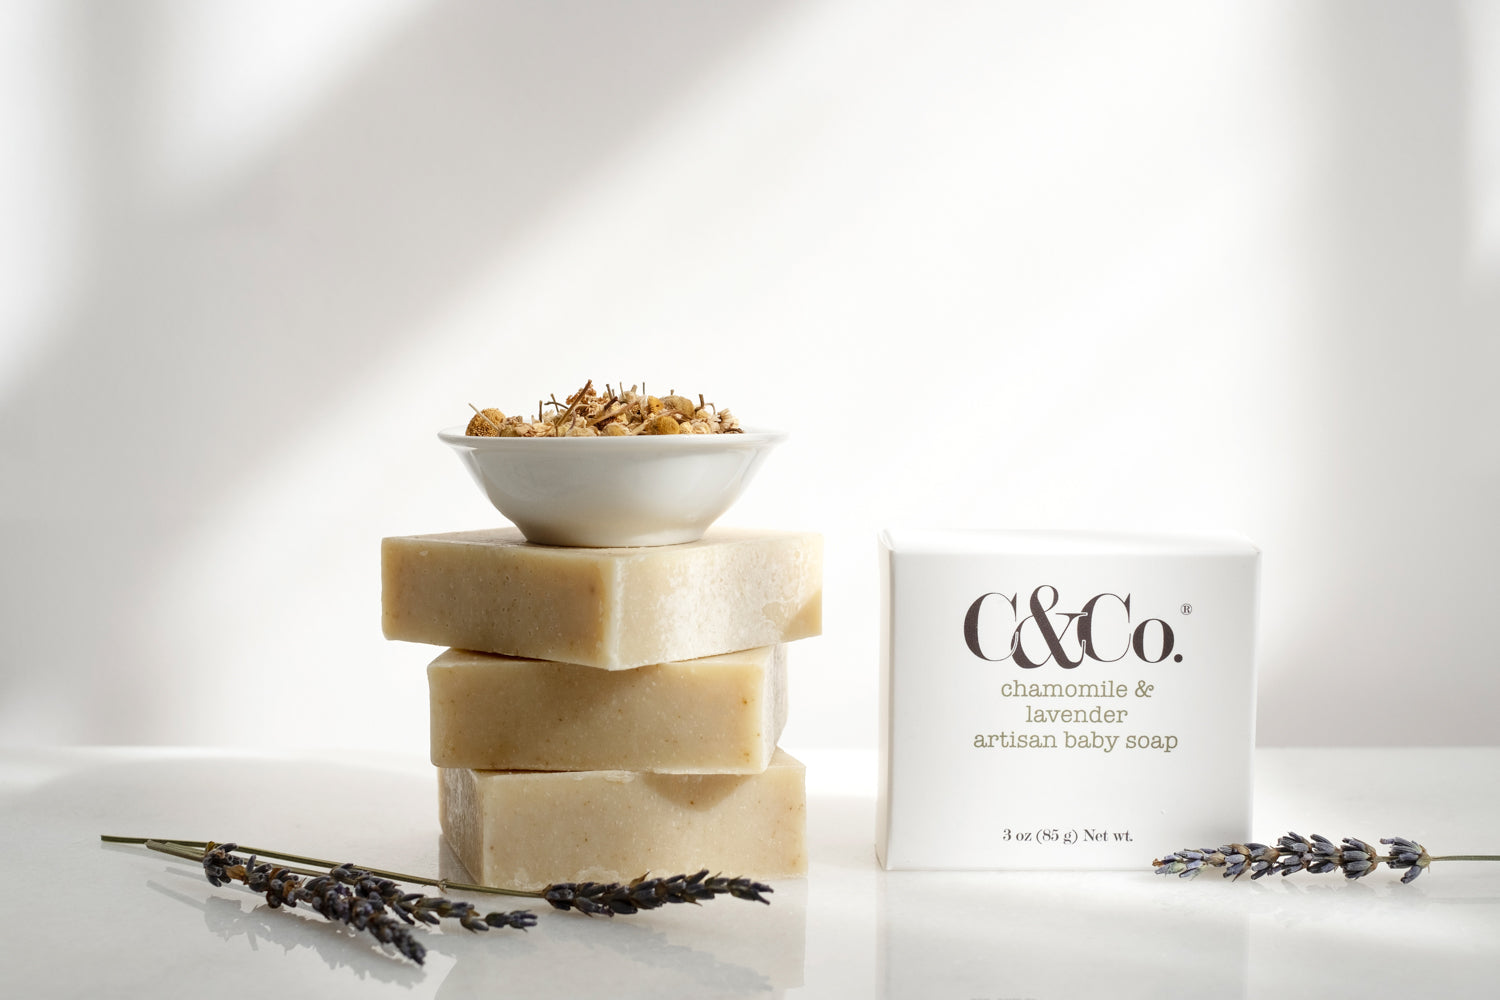 Chamomile & Lavender Artisan Baby Soap - C & Co.®